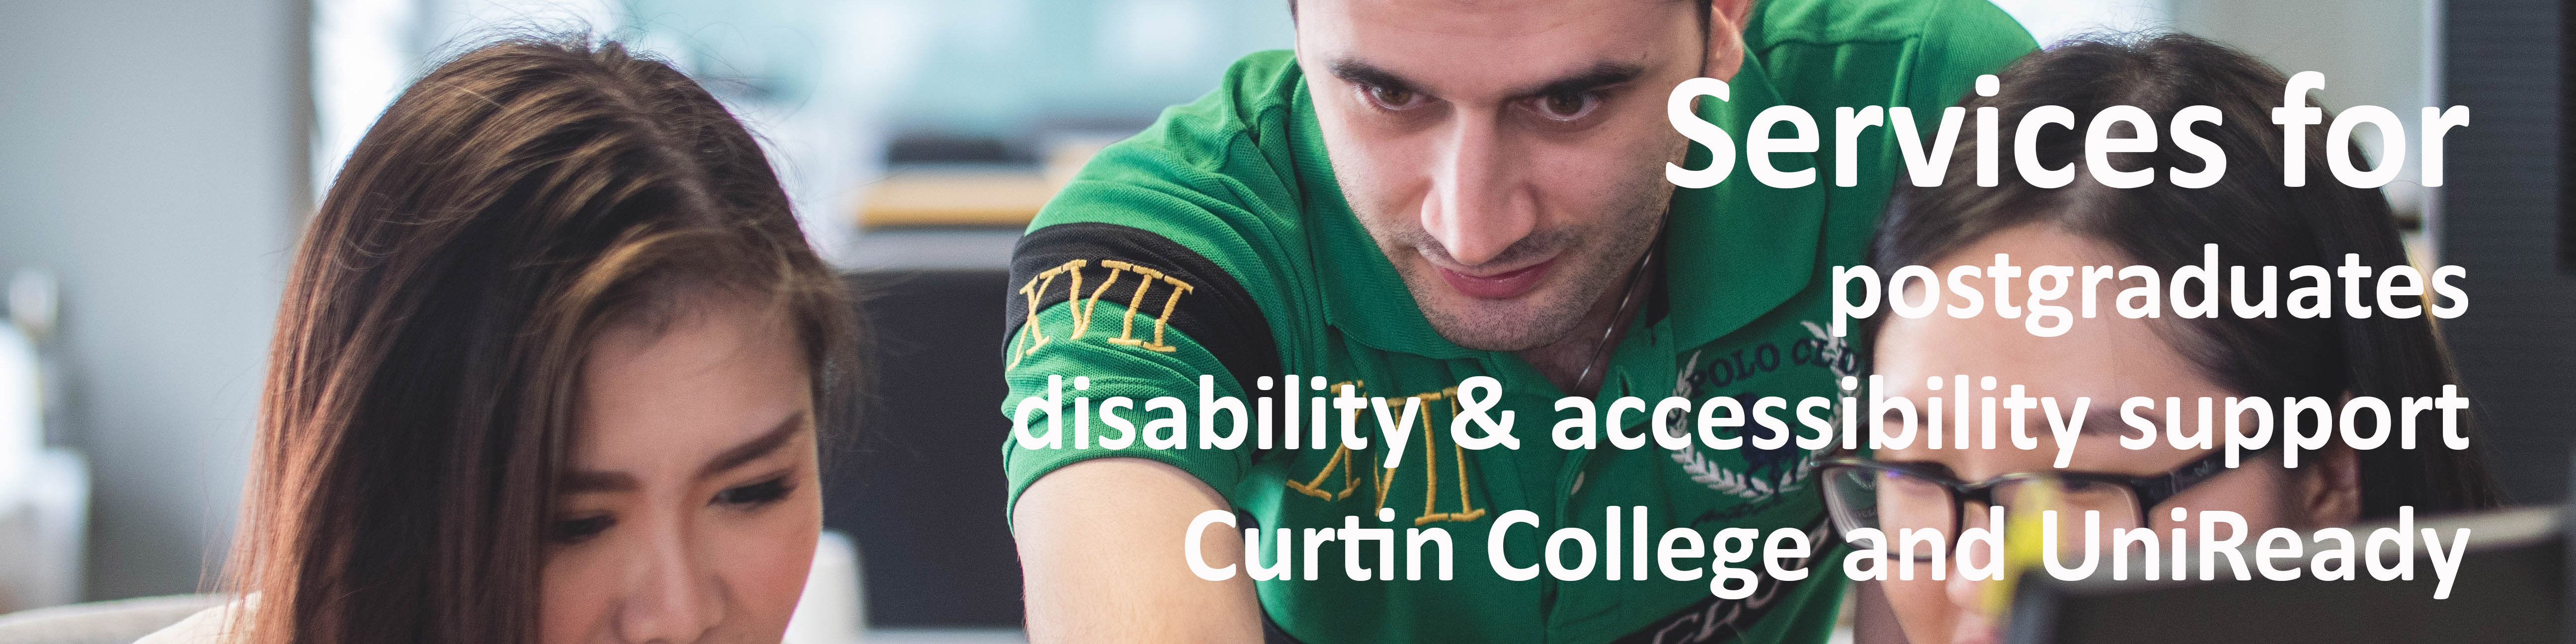 Services for postgraduates, disability and accessibility support, Curtin College and UniReady